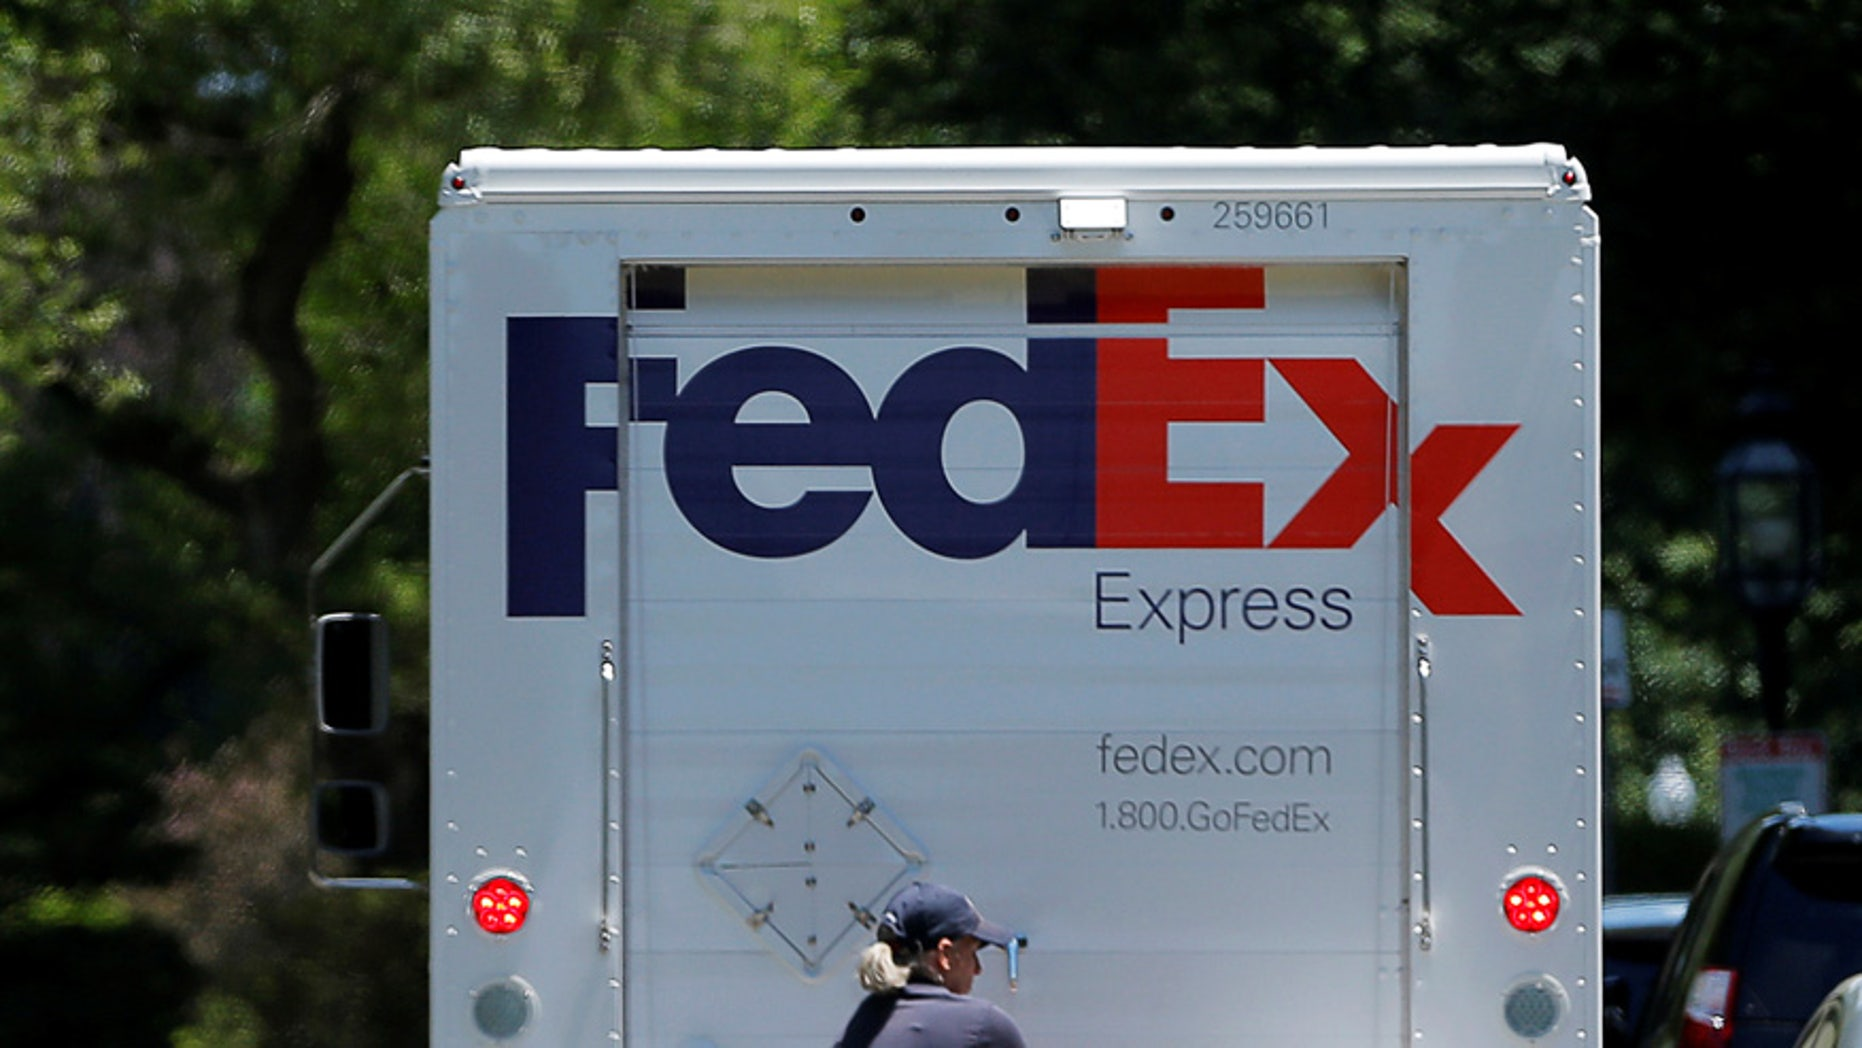 A Fedex driver delivers packages in Boston, Massachusetts, U.S. June 15, 2016.  REUTERS/Brian Snyder - RTX2GFDA